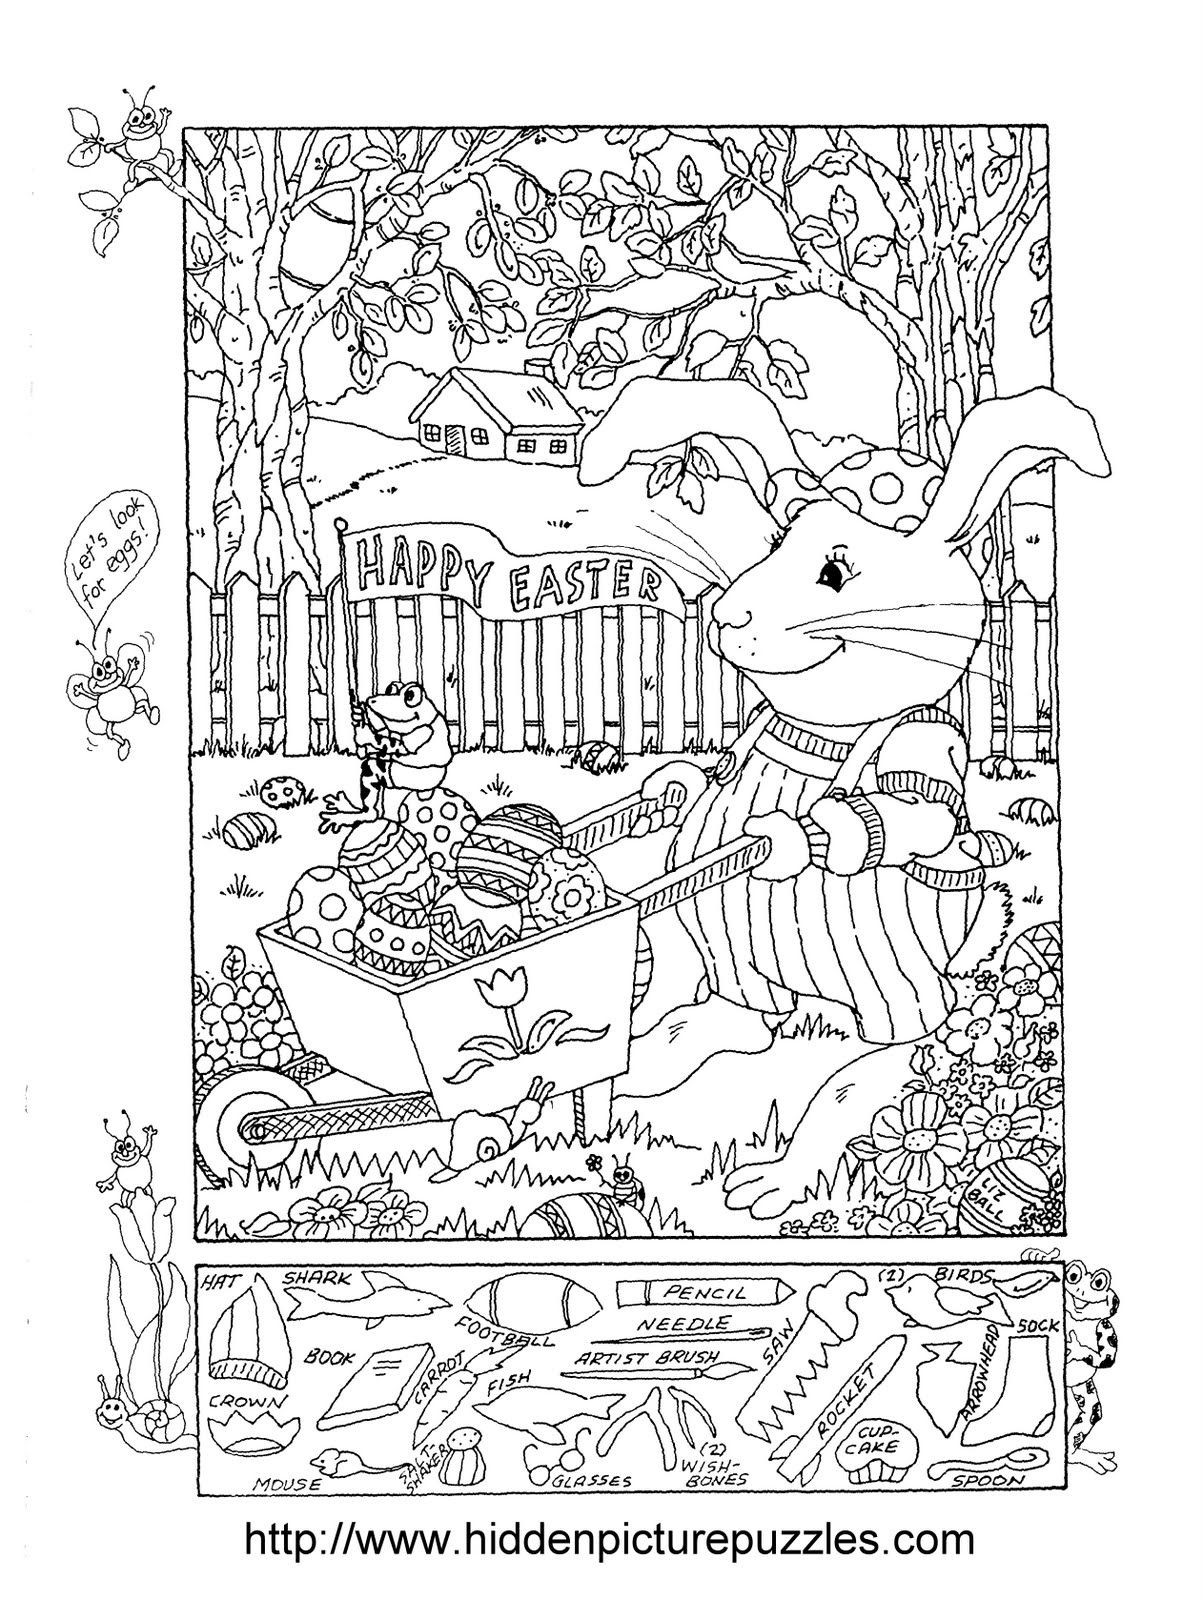 Christmas Hidden Pictures Printable Easter Hidden Picture Puzzle and Coloring Page